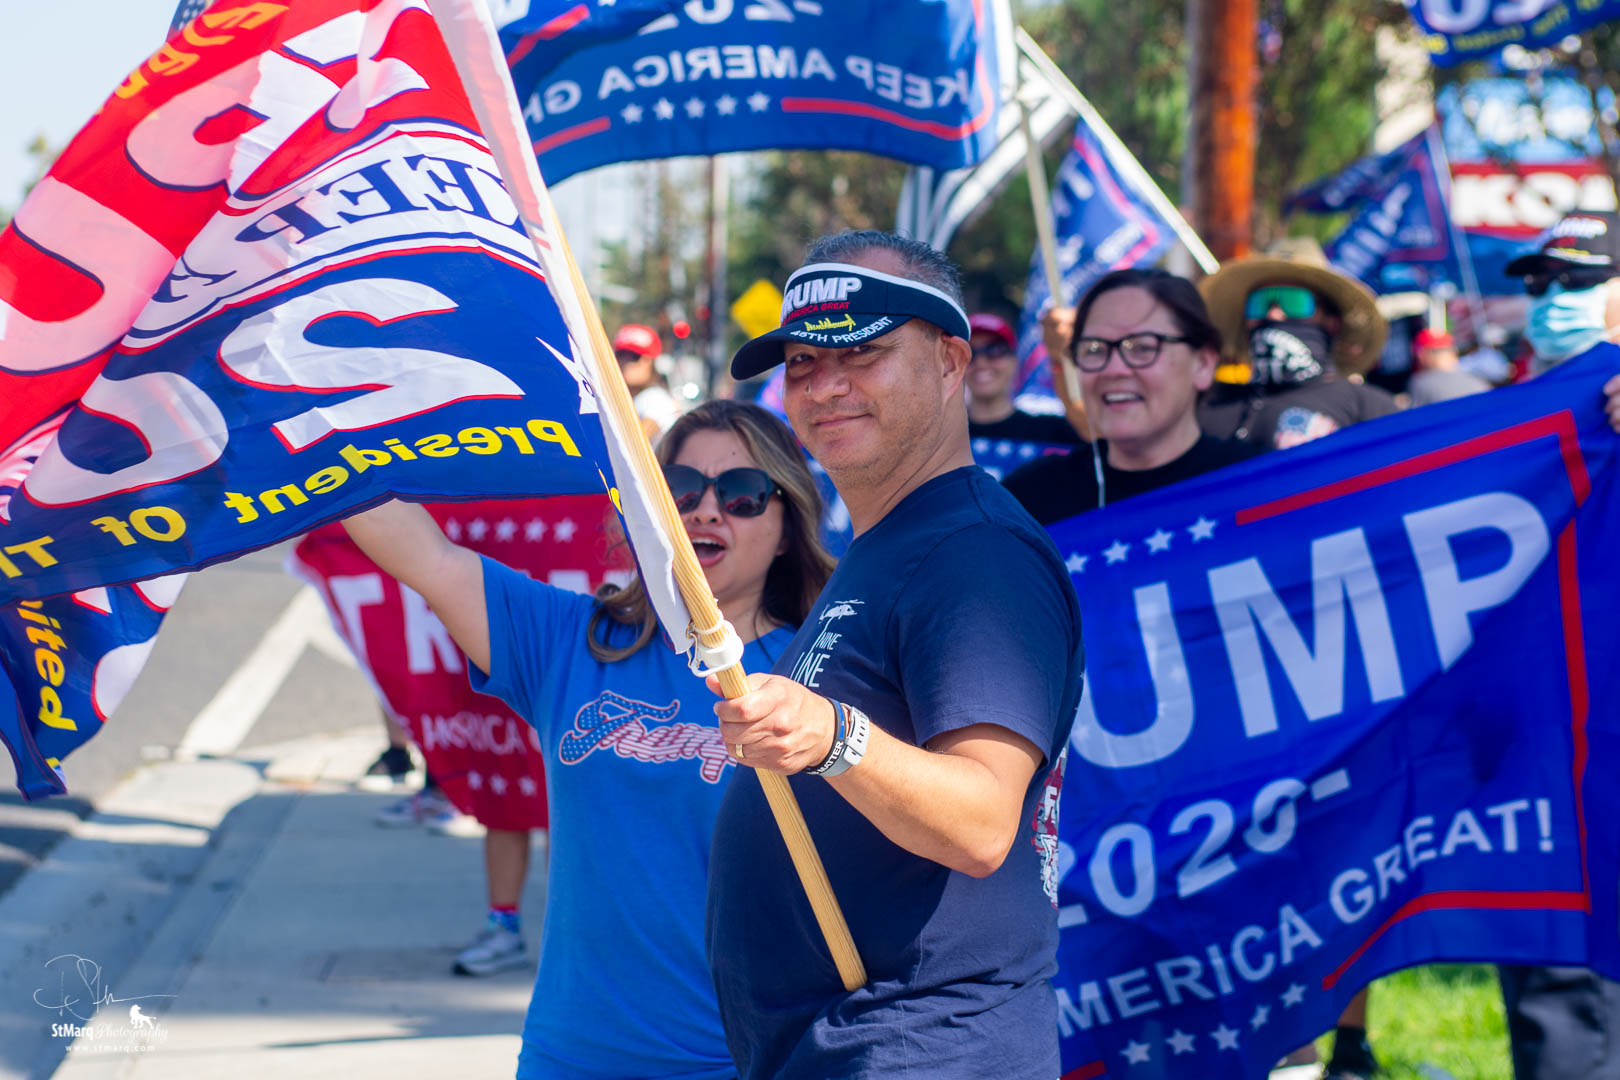 Bill Thomas, center, holding flag, and his wife, center, left, attend a Rally in support of President Trump on Sunday, October 18, 2020 in La Habra, CA.